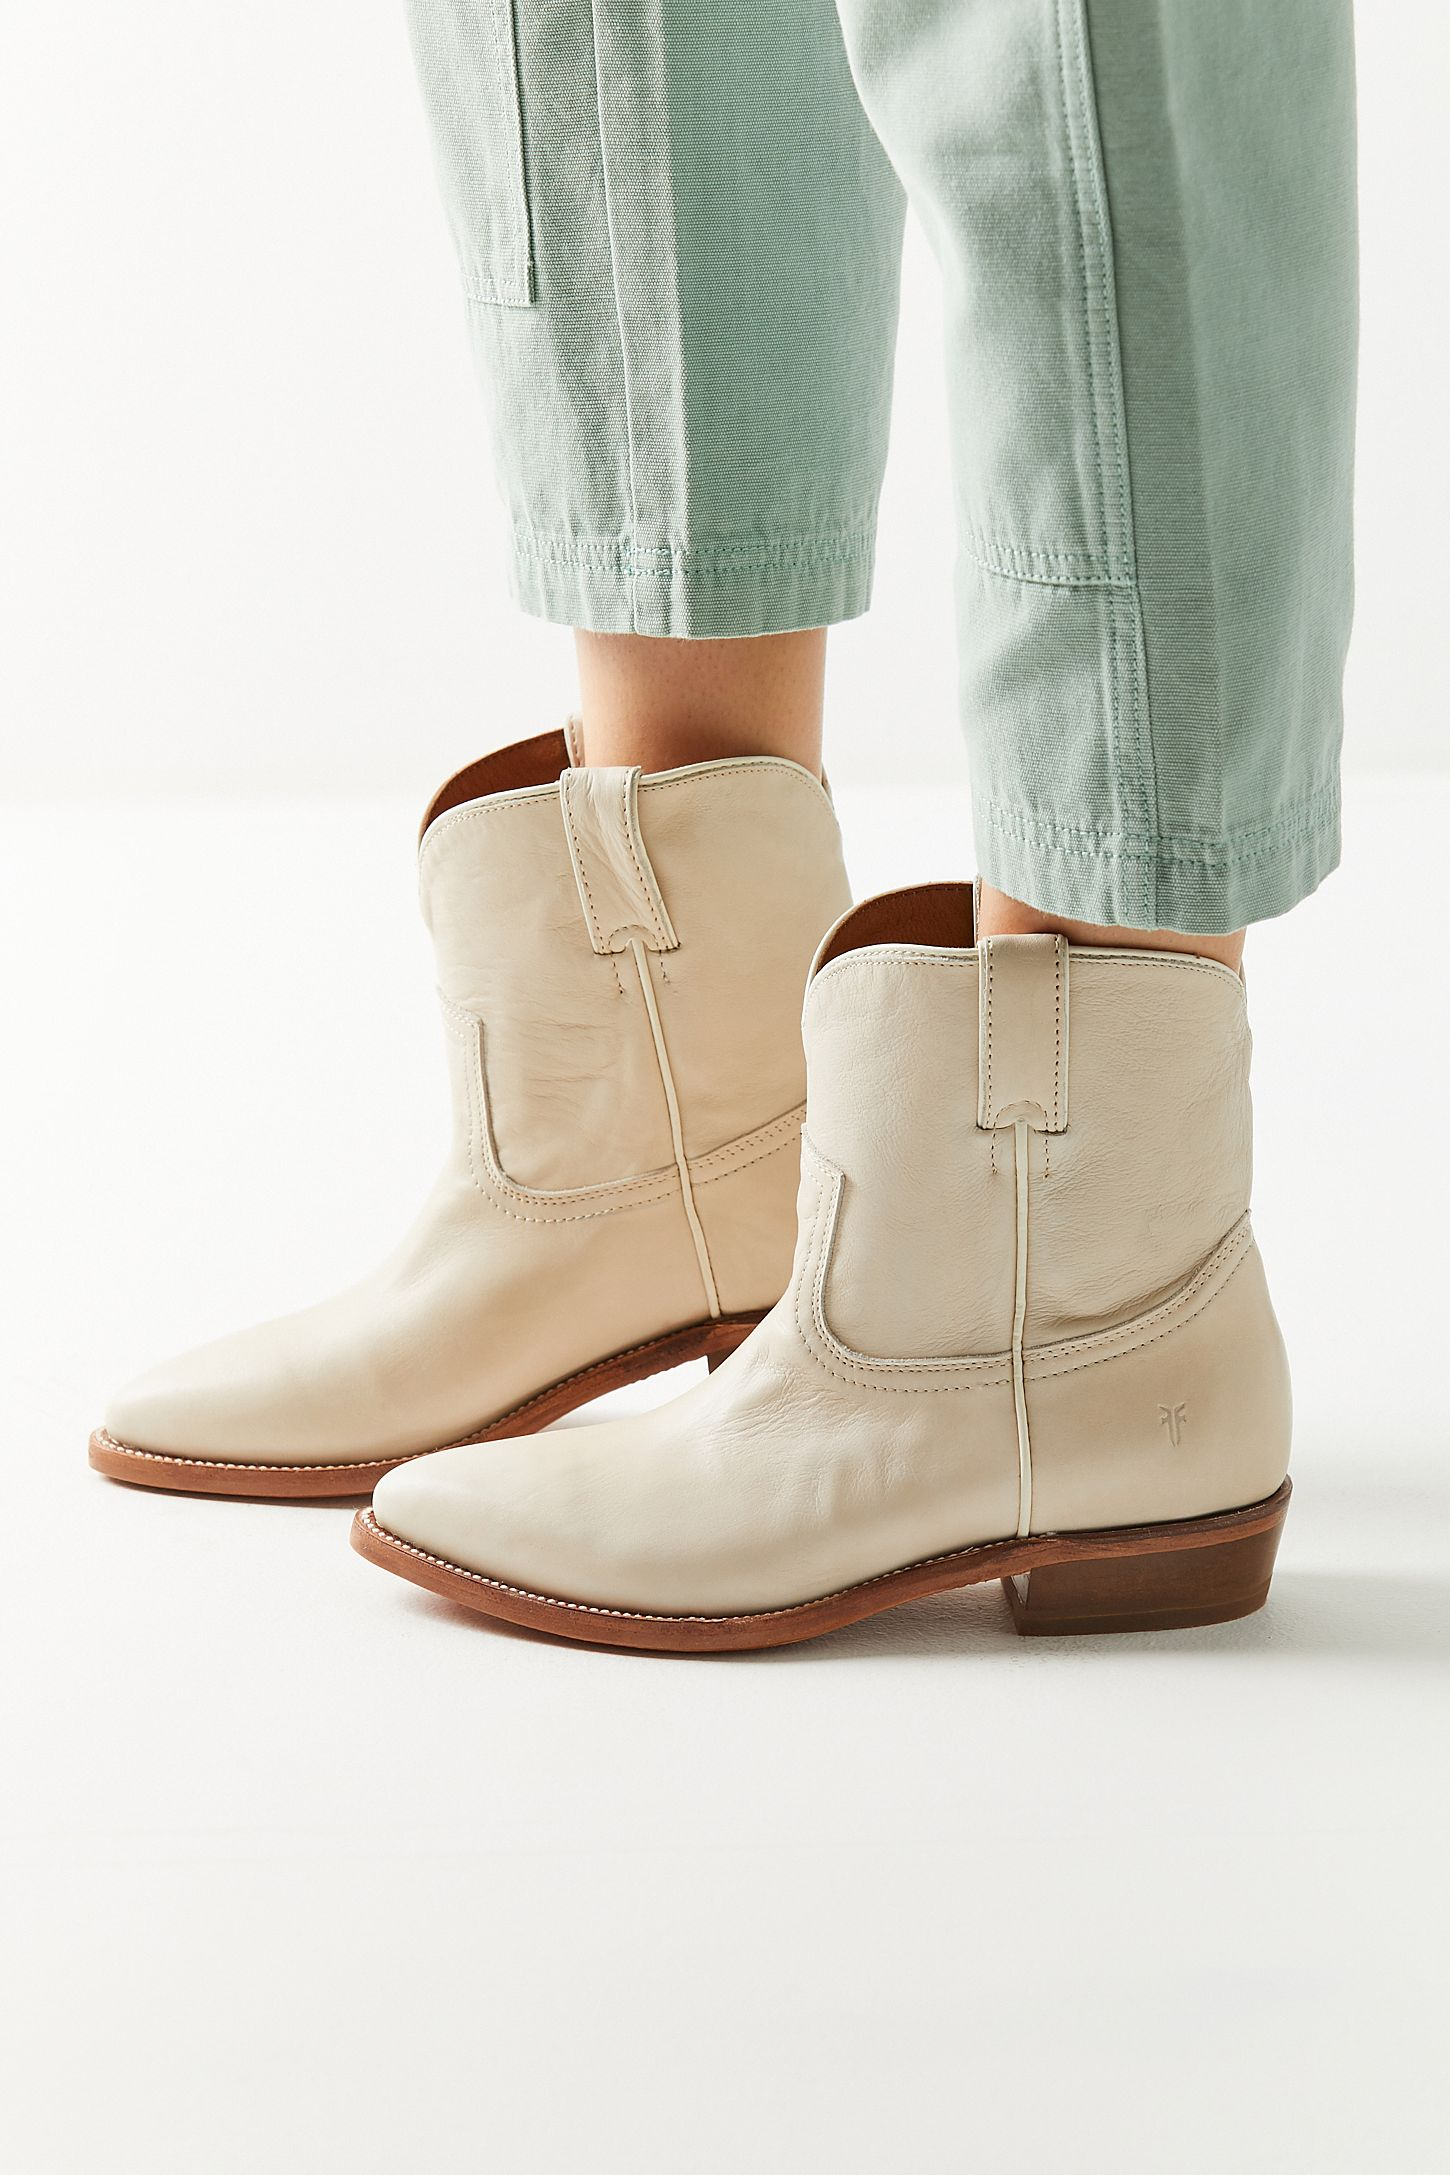 bd9b1d02eb3ed Frye Billy Short Boot | Urban Outfitters